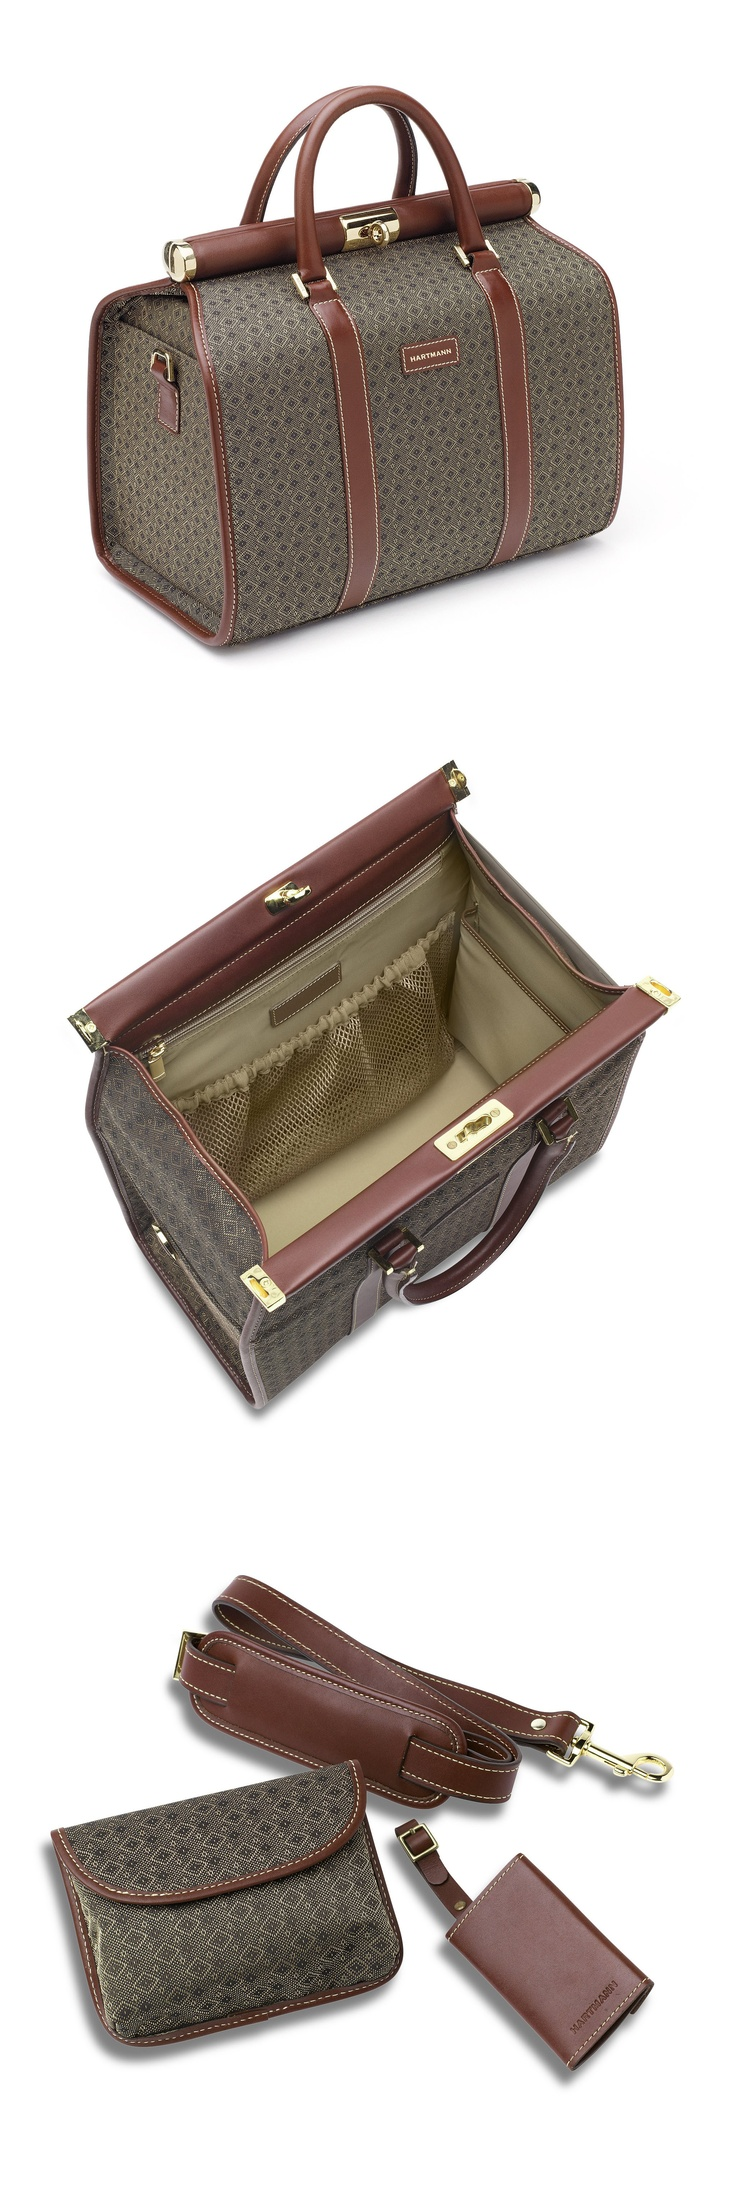 The Wings Collection: Cosmetic Case   Mini cosmetic pouch, adjustable full-size bottle holders and interior pockets for organization; comfortable tubular leather handles. Removable, adjustable leather shoulder strap with non-slip pad and custom Belting Leather luggage tag included. http://bit.ly/z8gRGt